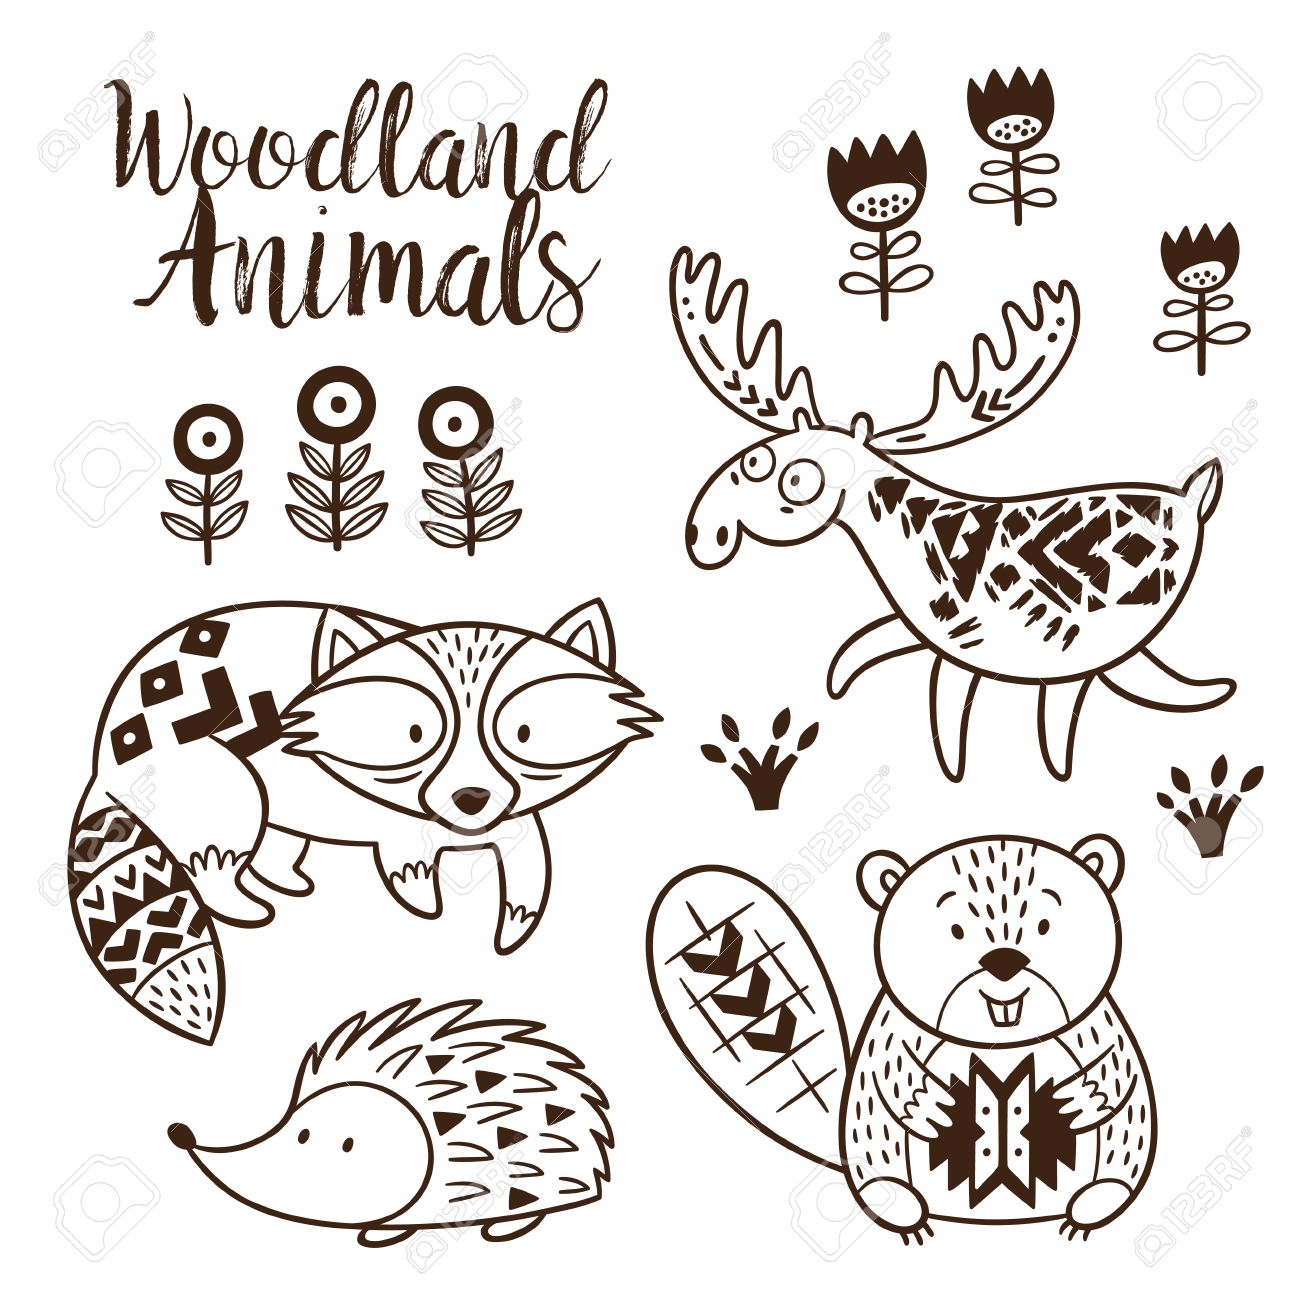 Woodland Animal Coloring Pages For Kids Hand Drawn On A White Background Book